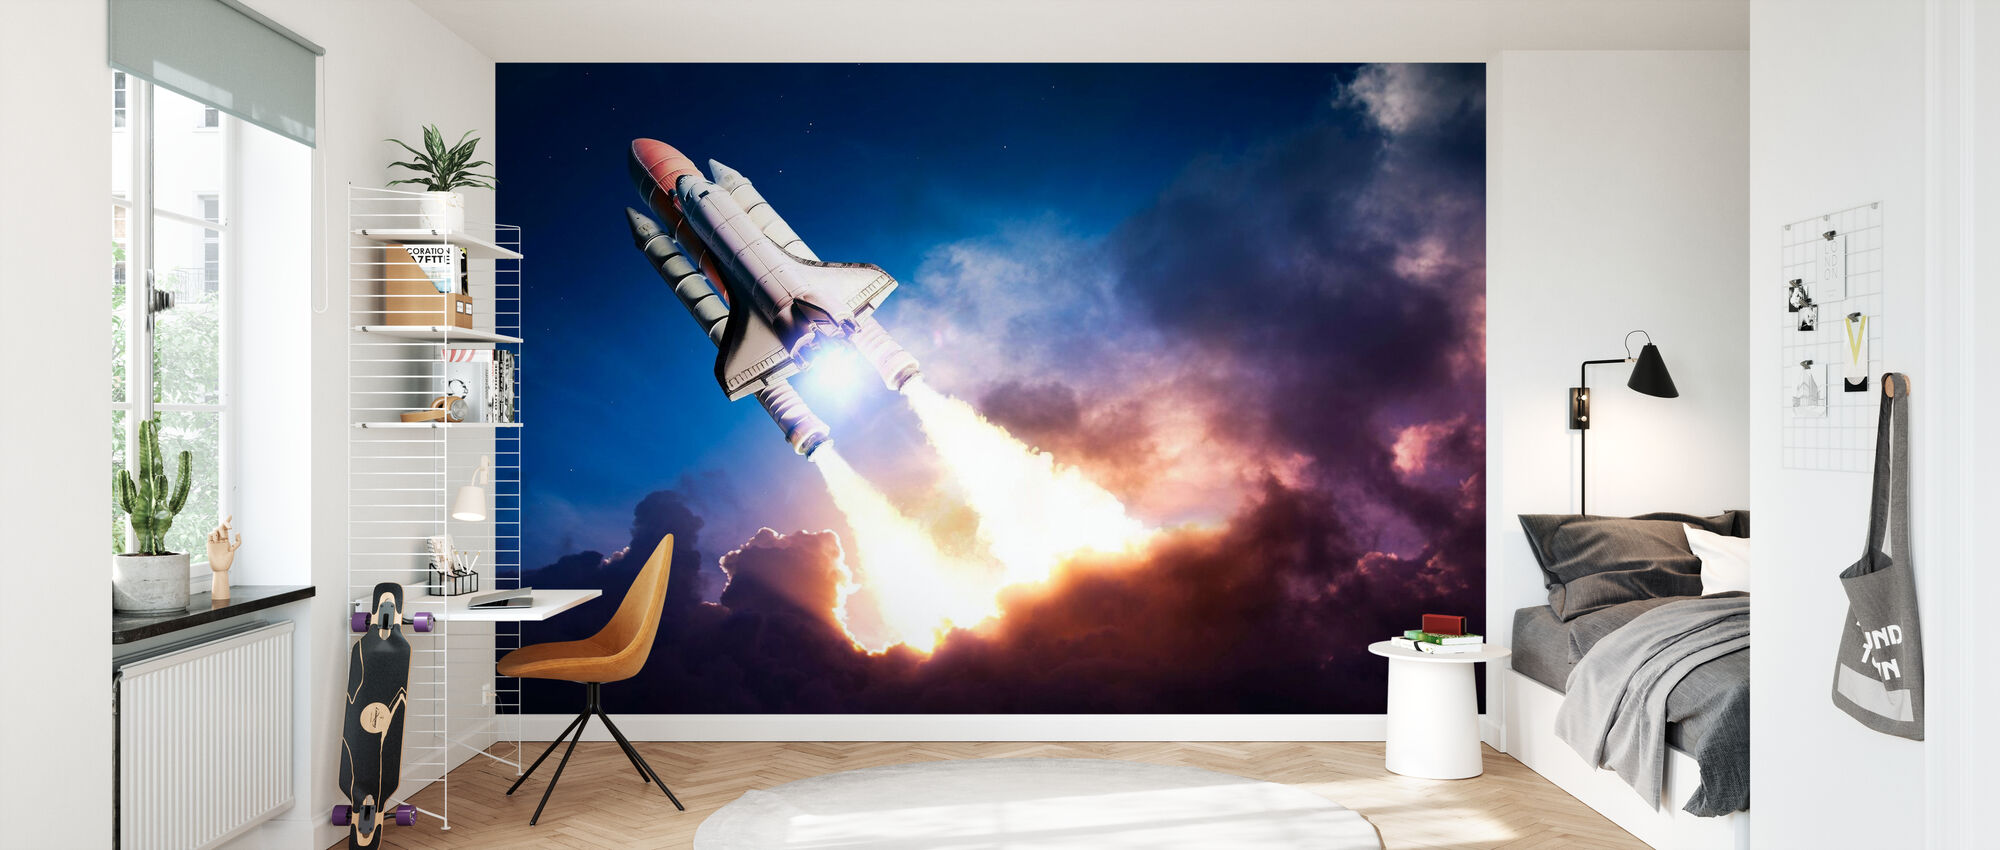 Supersonic rocket in the outer space wall mural